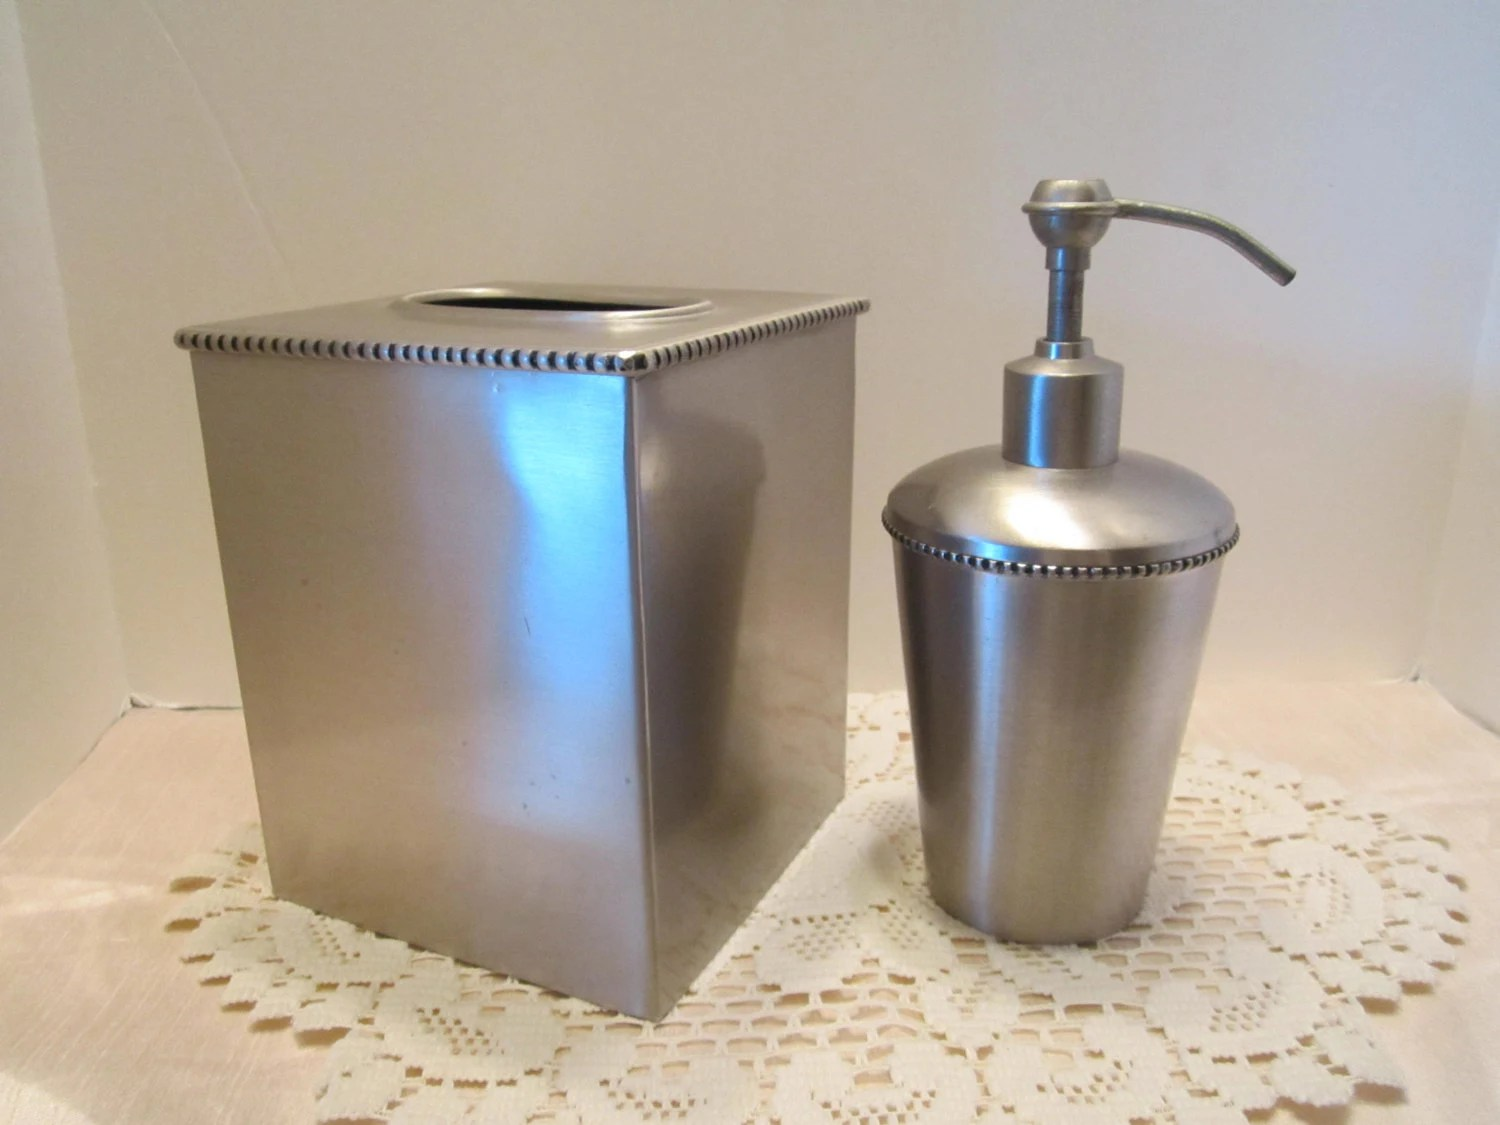 Vintage Bathroom Soap Dispenser Brushed Steel Tissue Box Cover And Soap Dispenser Vintage